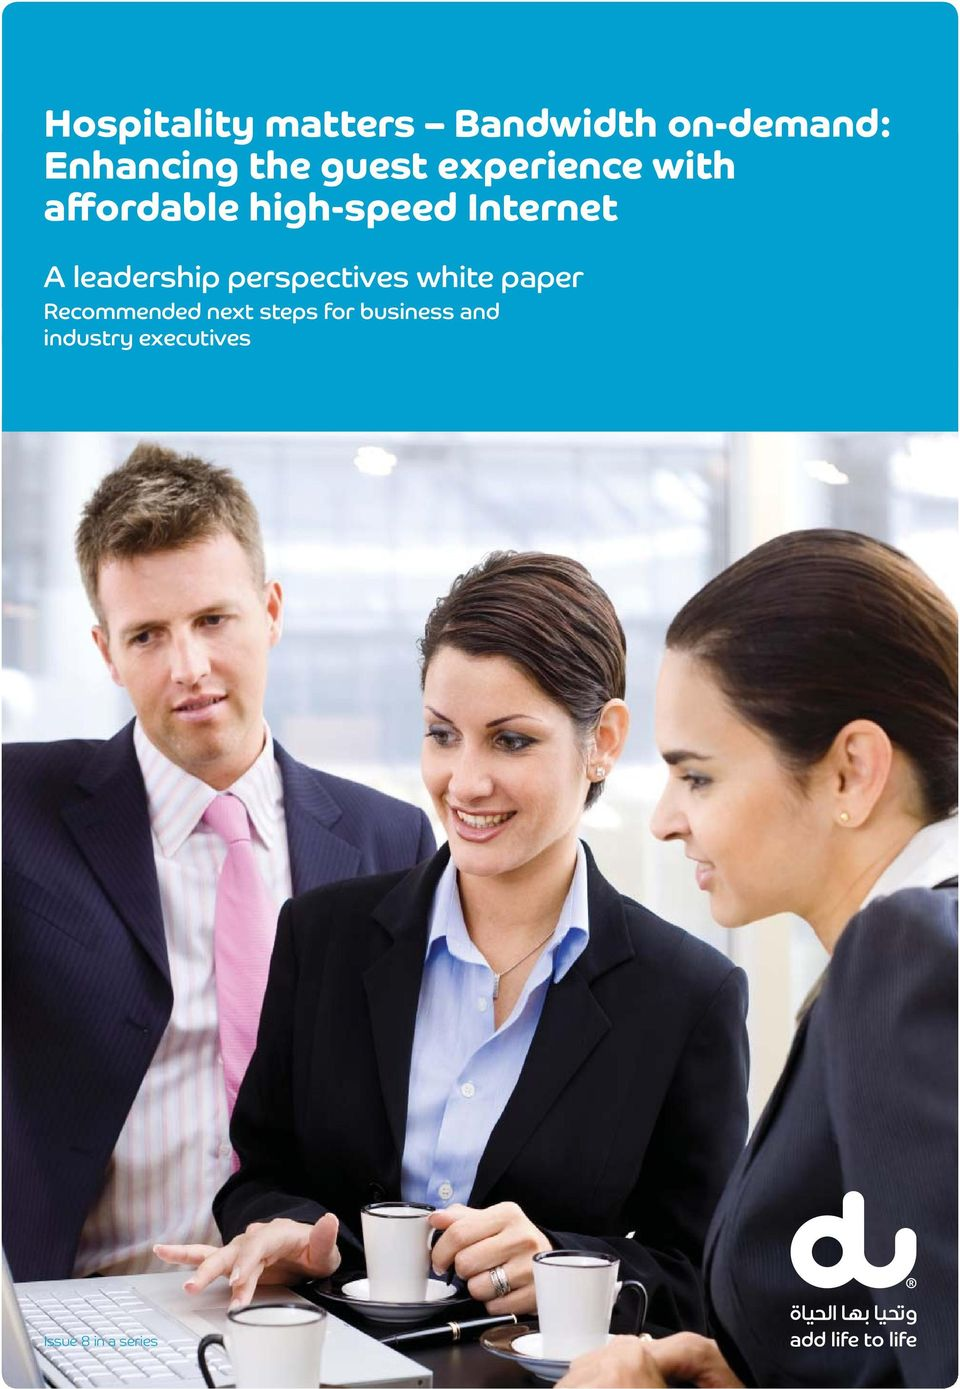 leadership perspectives white paper Recommended next